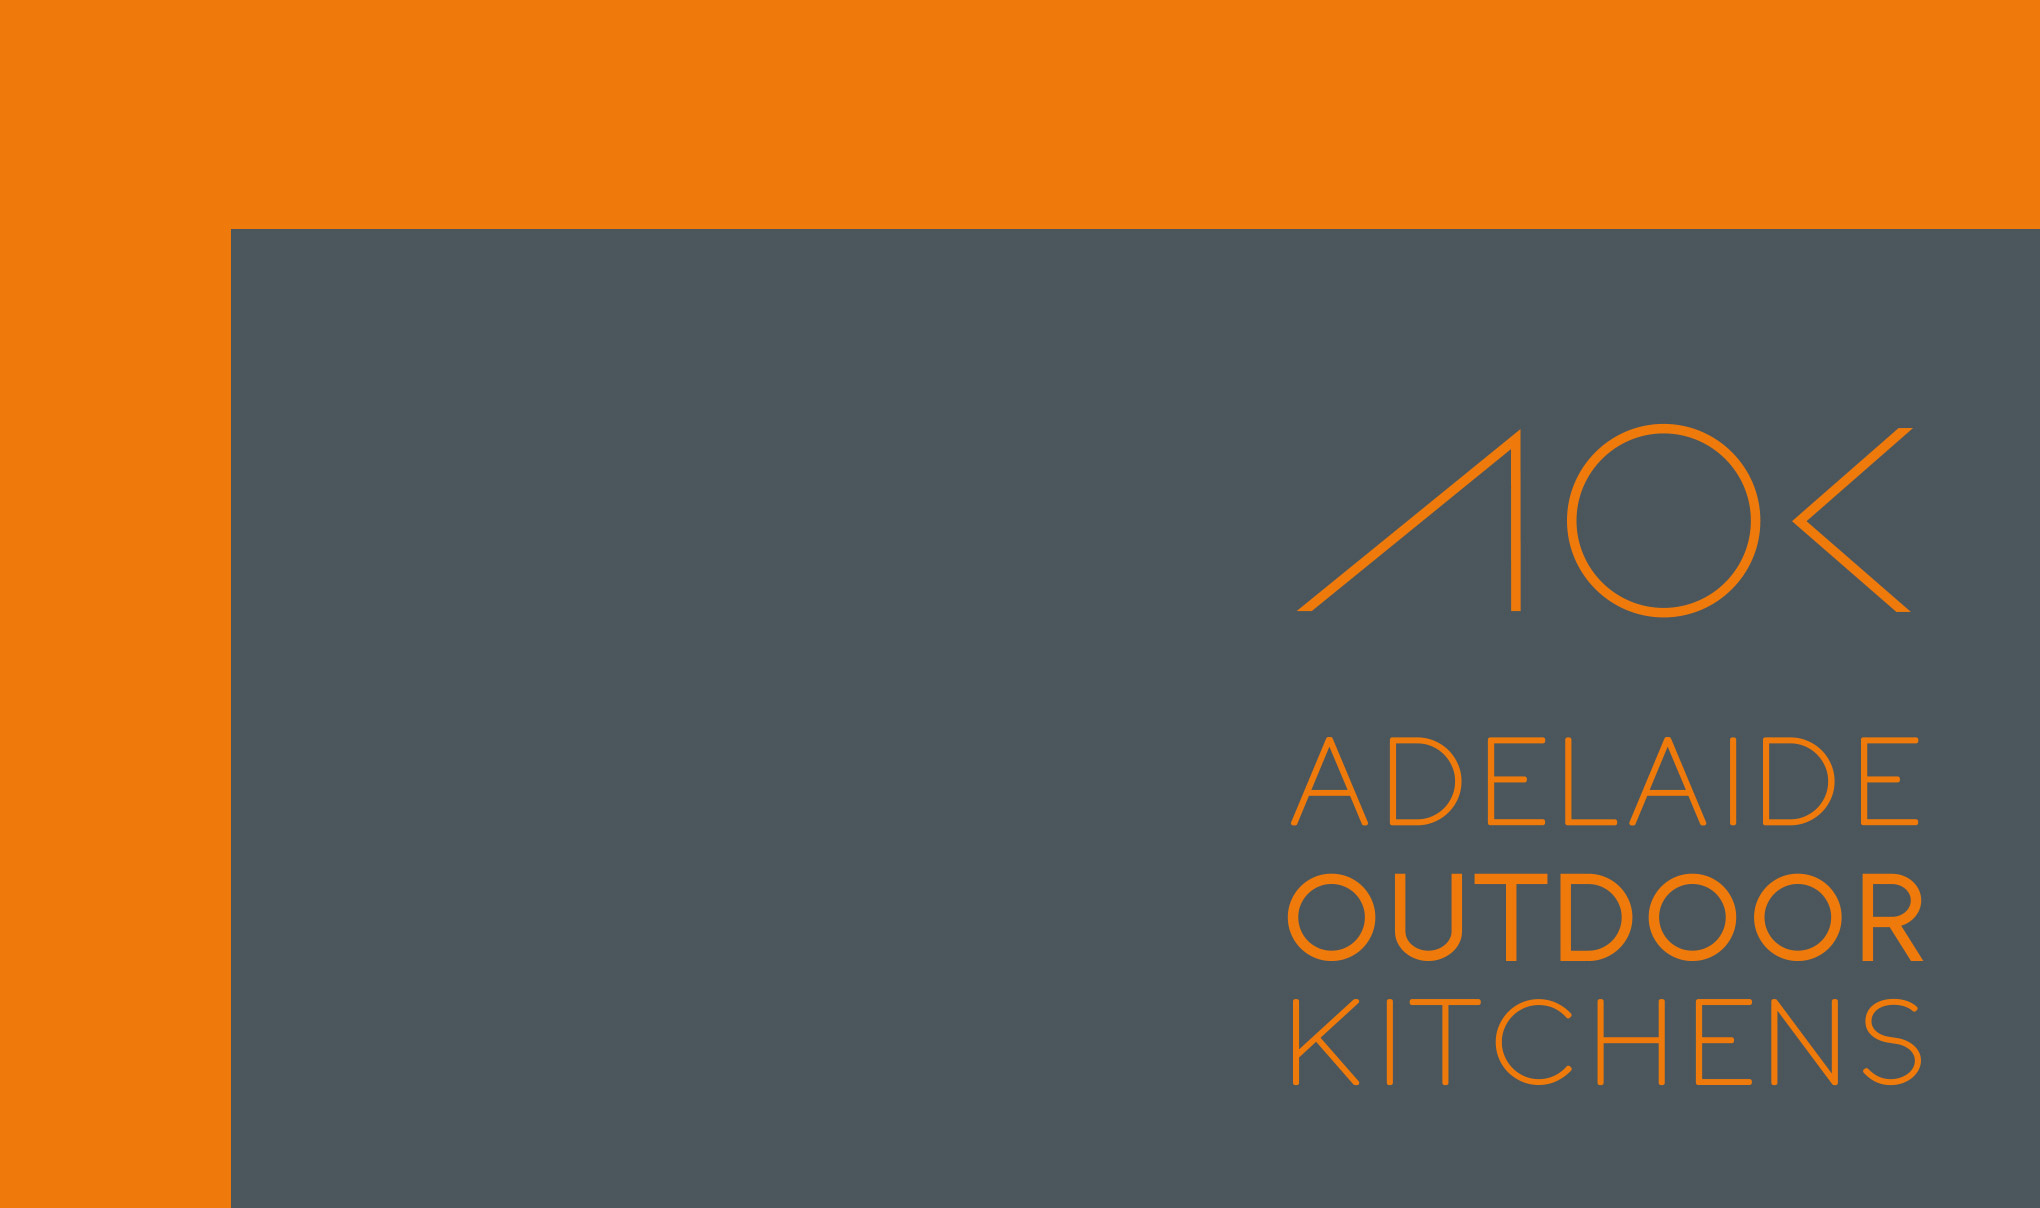 Identity Design for Australian outdoor kitchen company. Image shows brand logo in orange on grey. Identity design created by Flipflop Design Ltd.